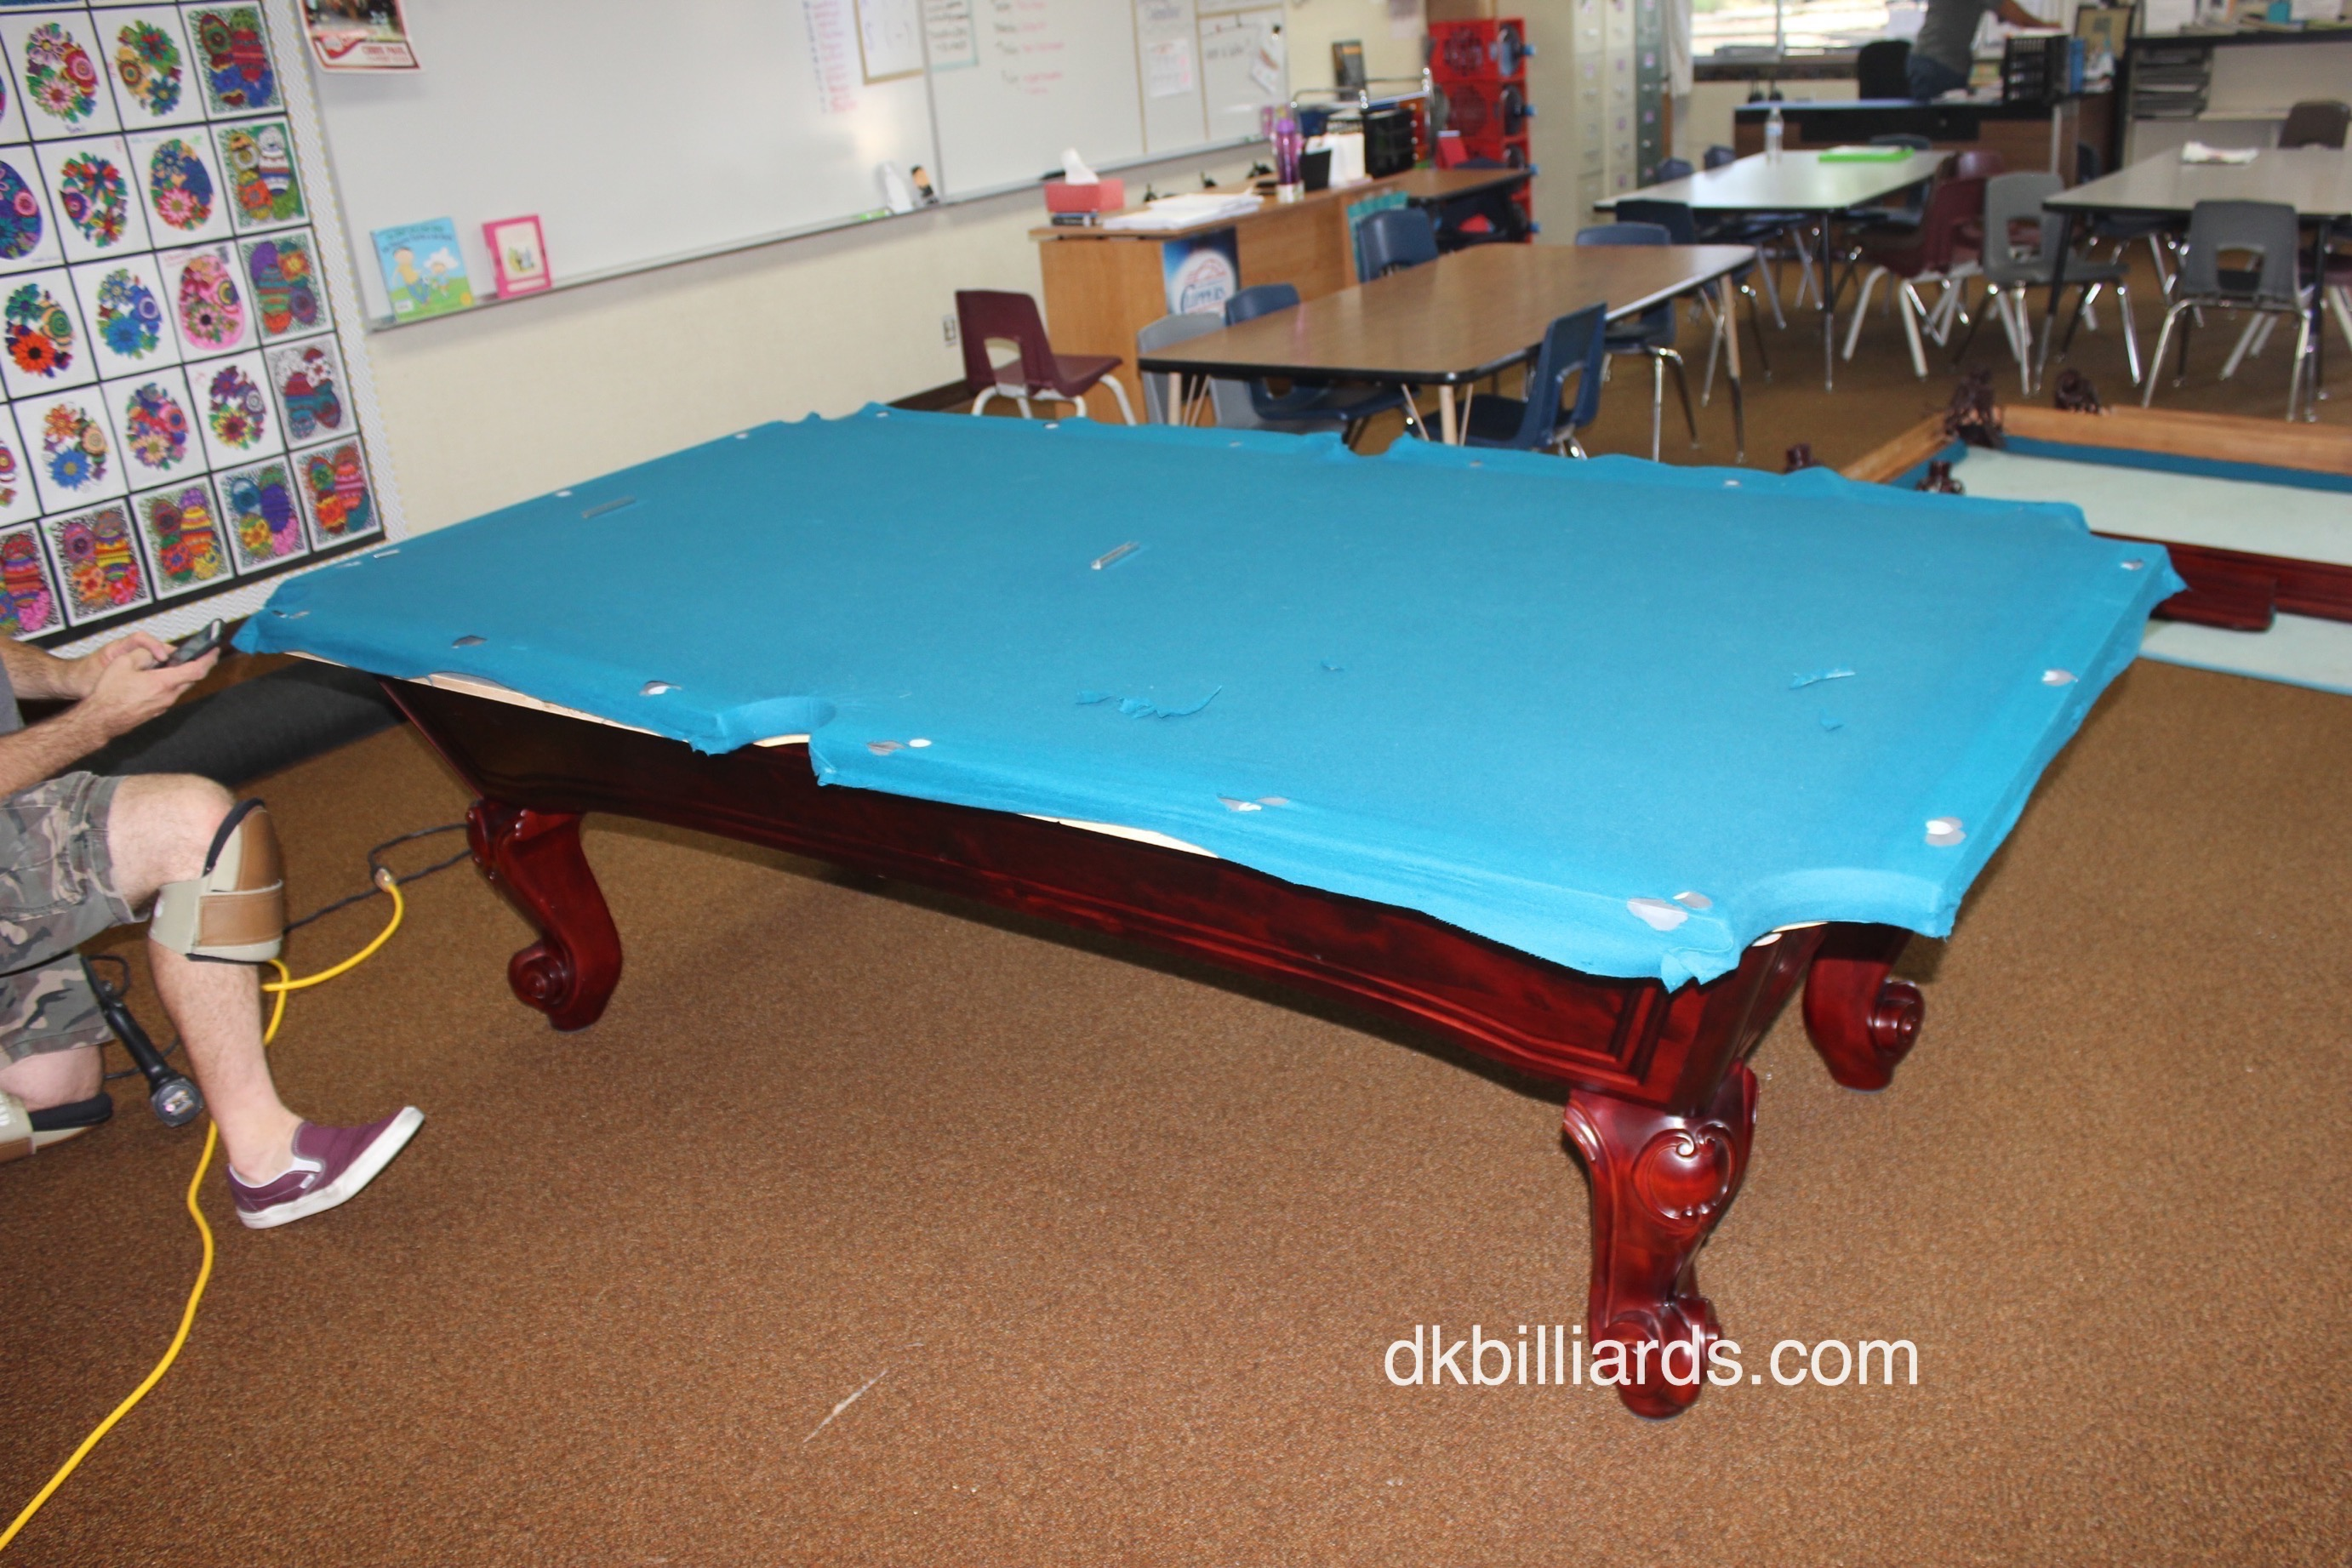 Superior Donating Your Pool Table Is A Great Way To Give Back To The Community And  Can Likely Be A Deduction On Your Taxes. If You Are Interested In Giving  Your Pool ...